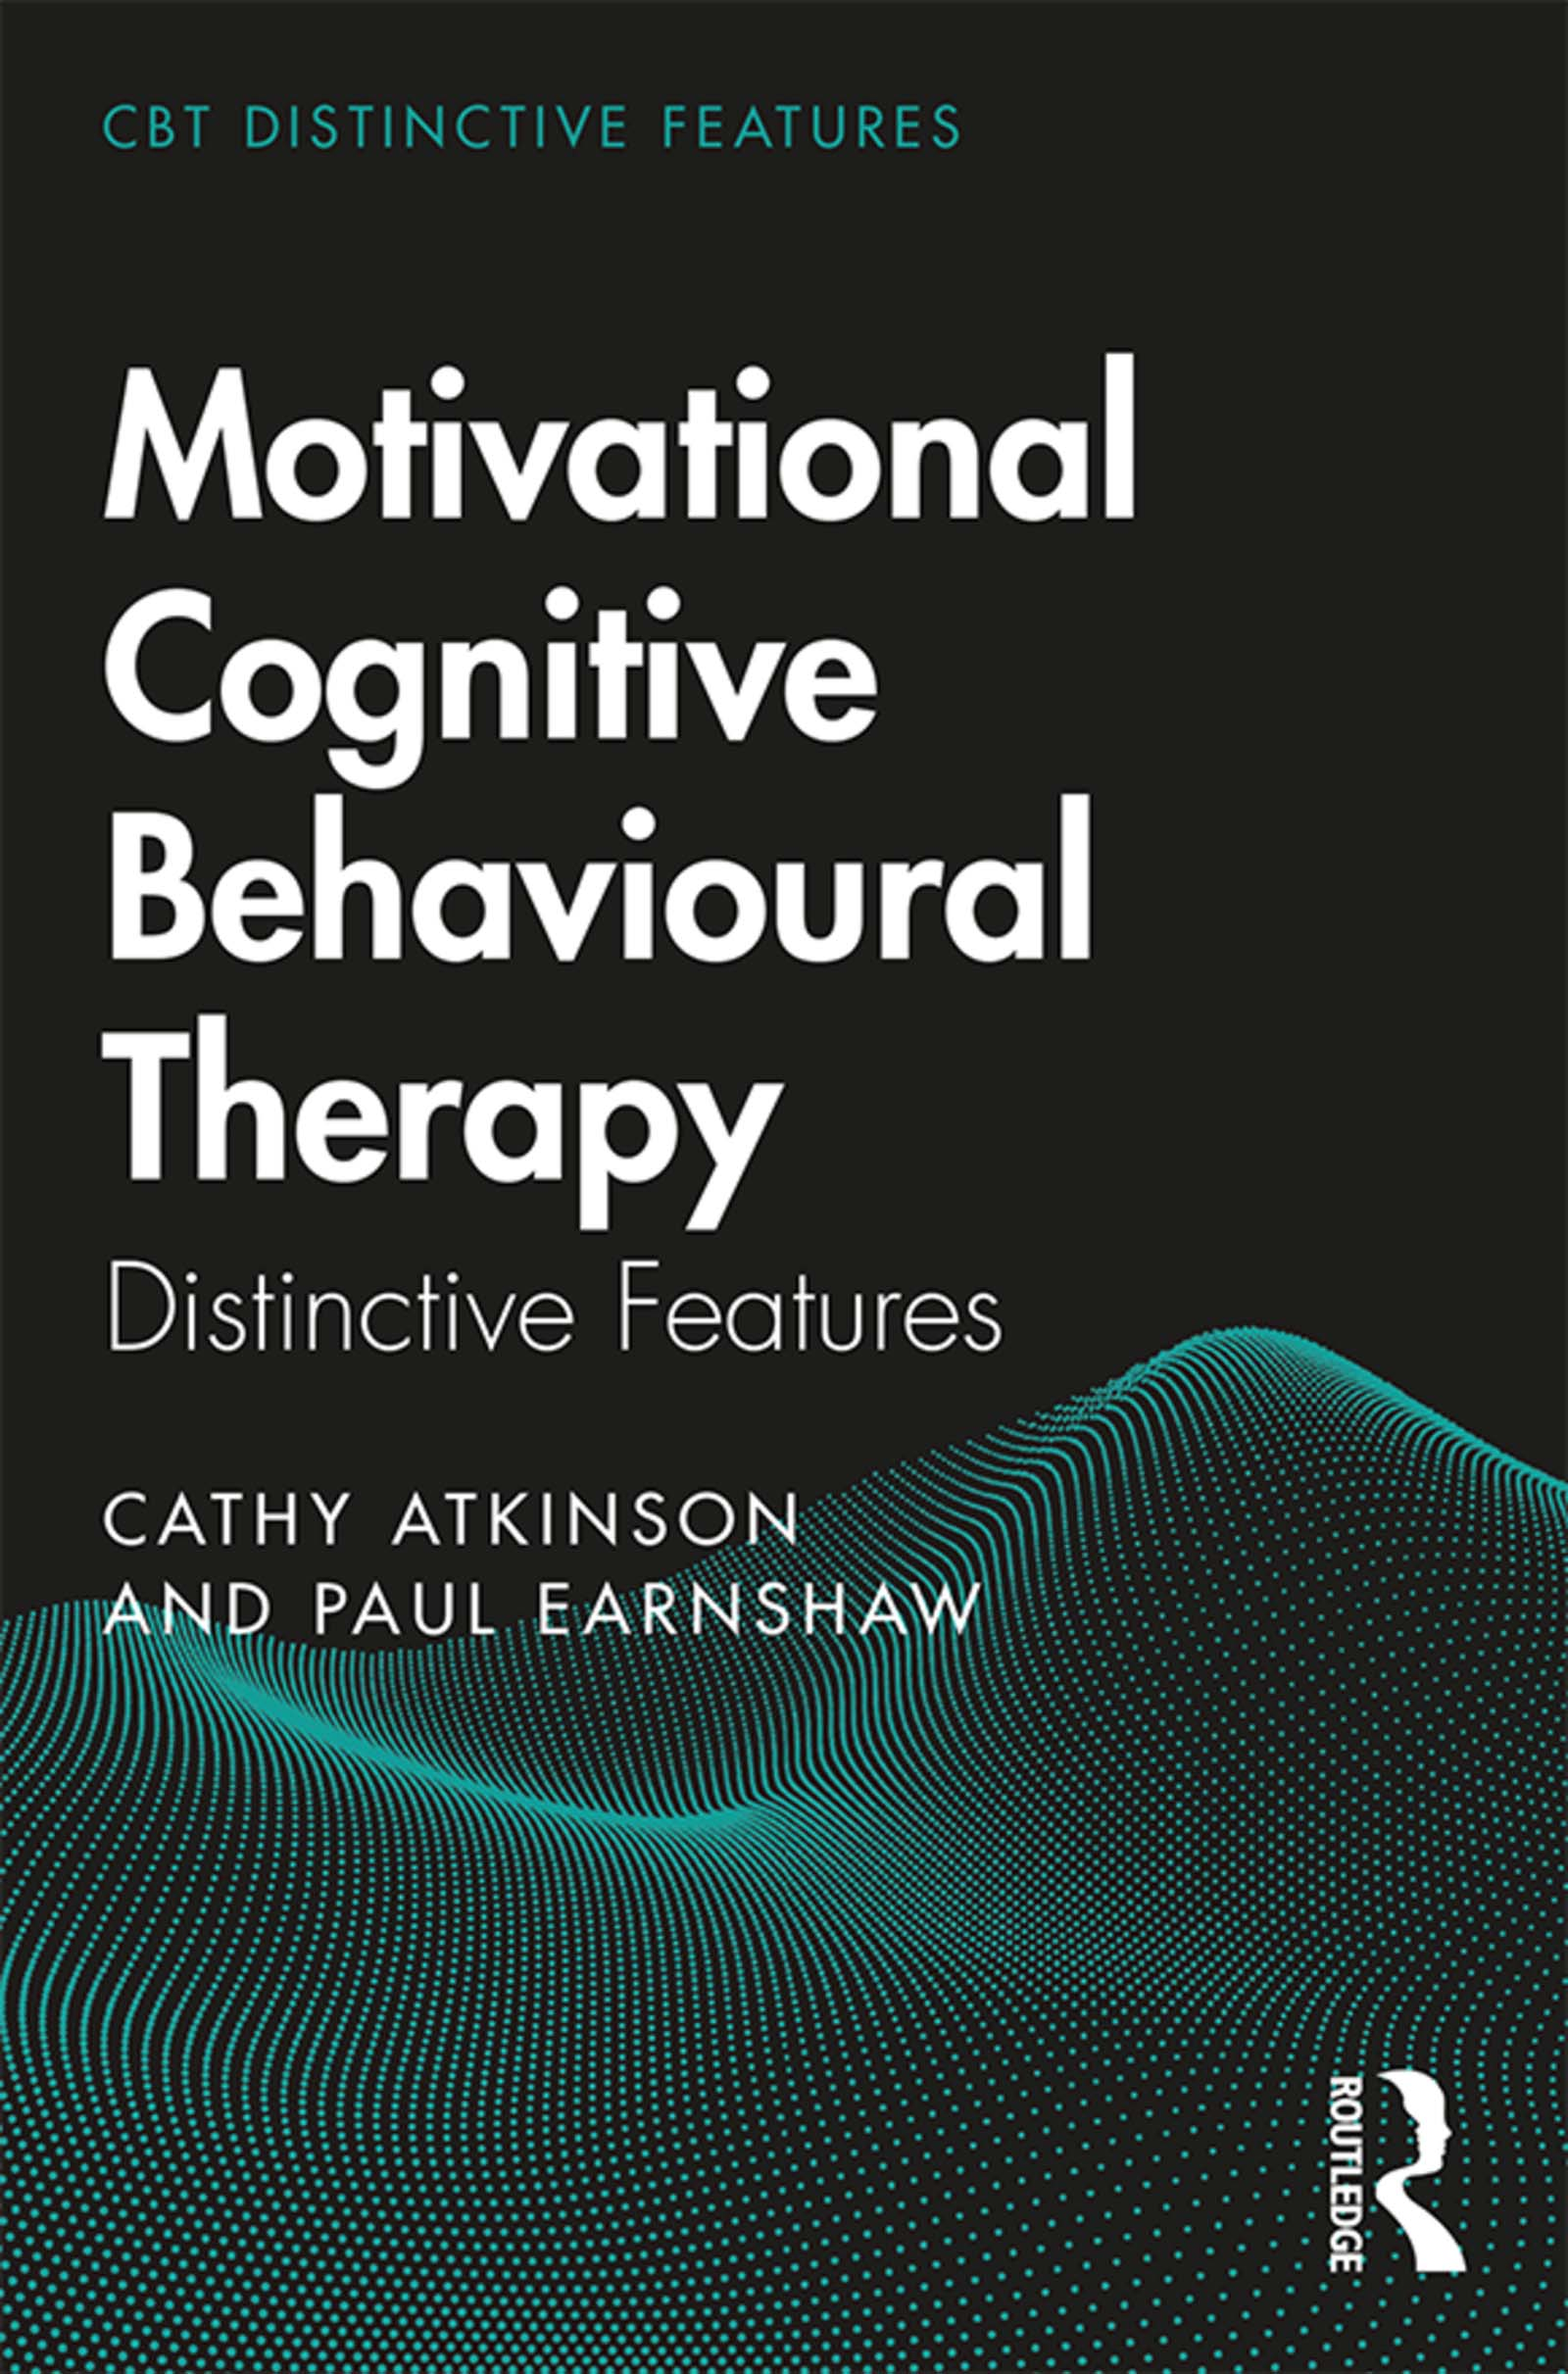 Motivational Cognitive Behavioural Therapy: Distinctive Features book cover